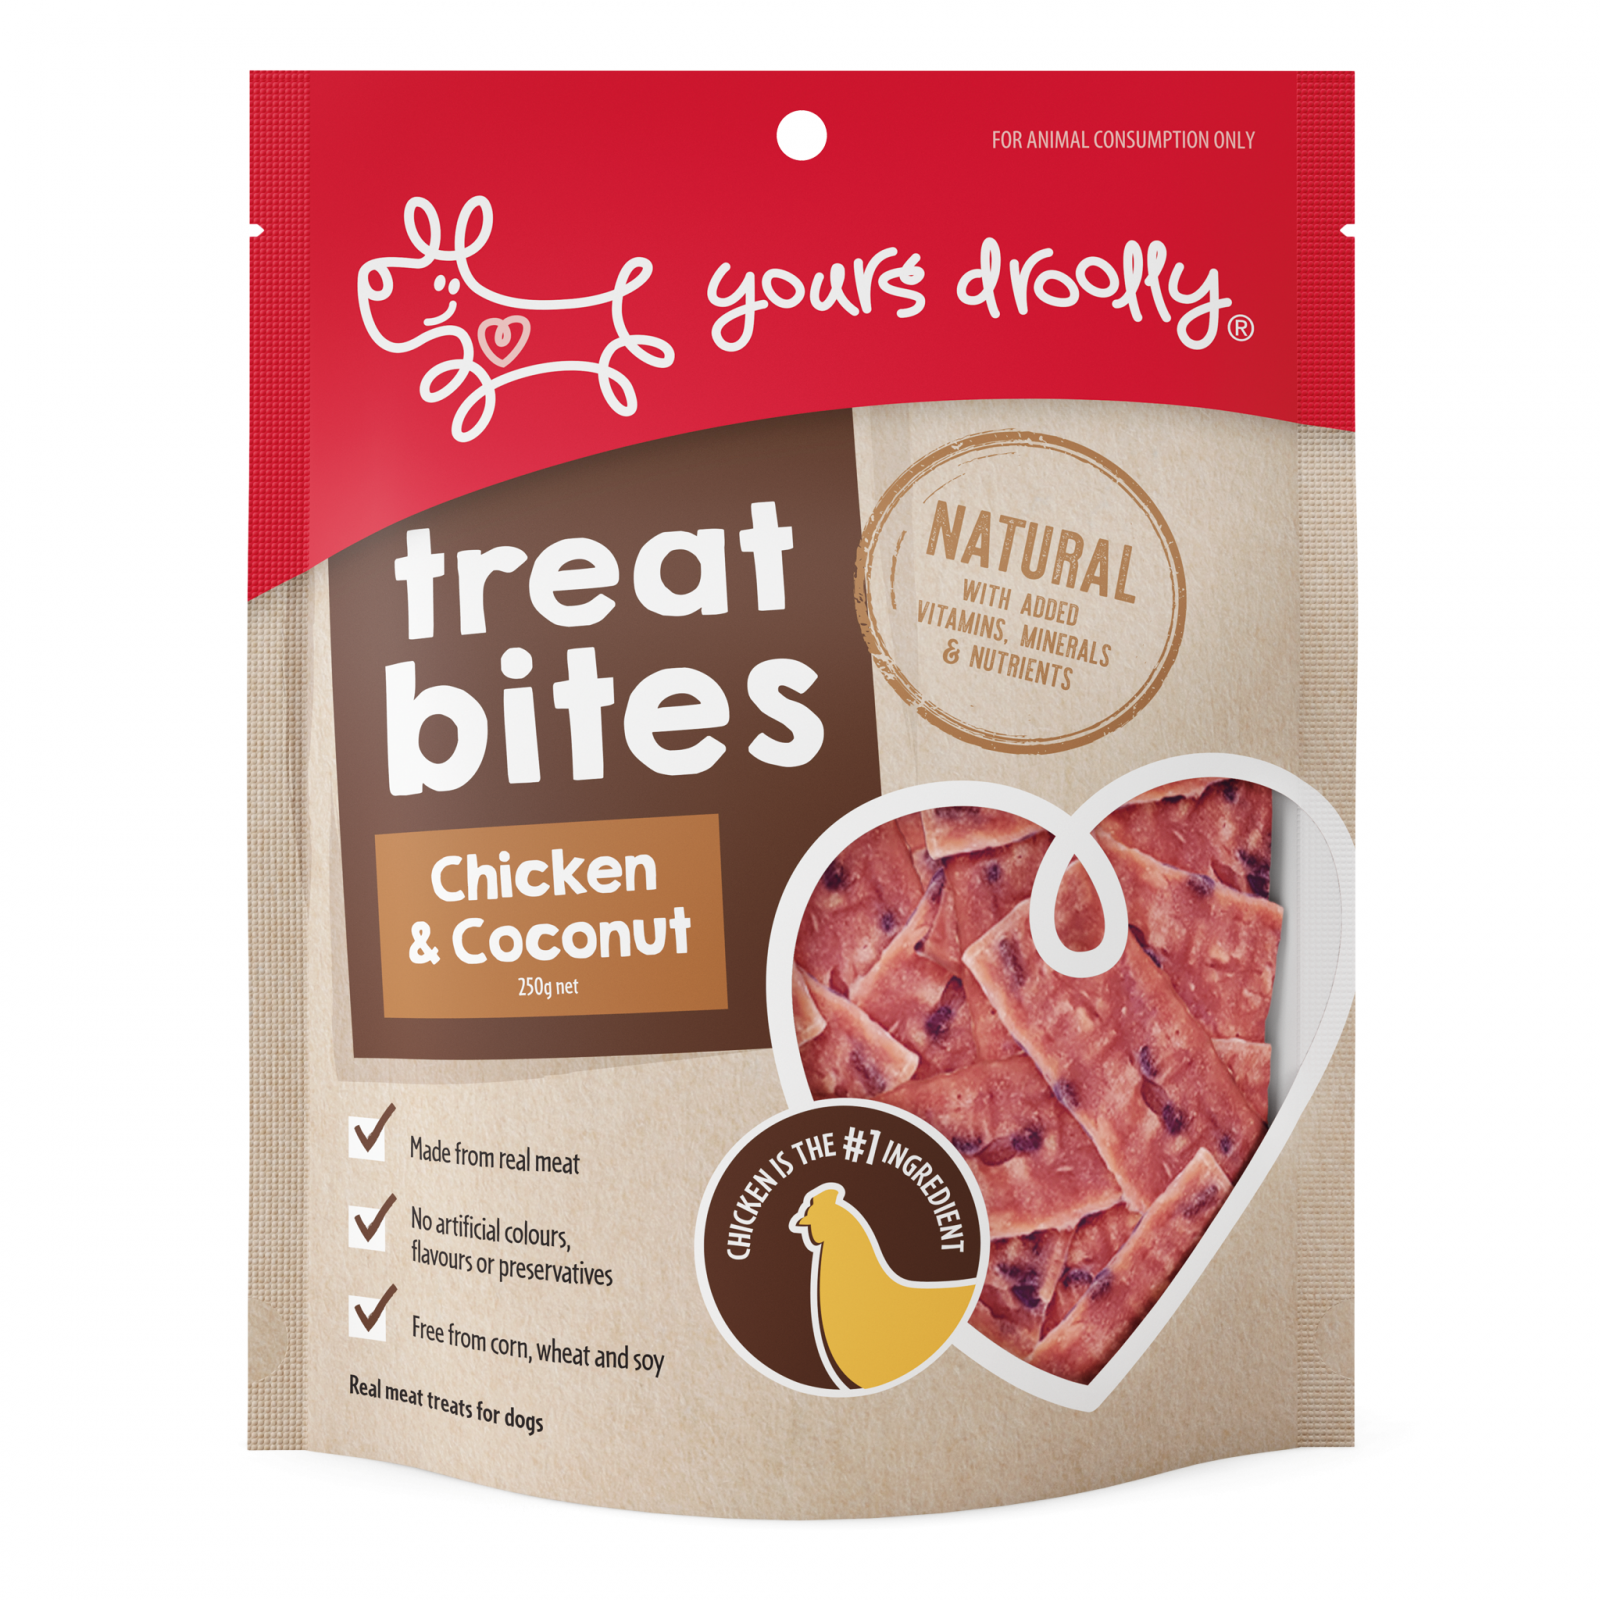 Yours Droolly Yours Droolly Treat Bites Chicken & Coconut Dog Treats